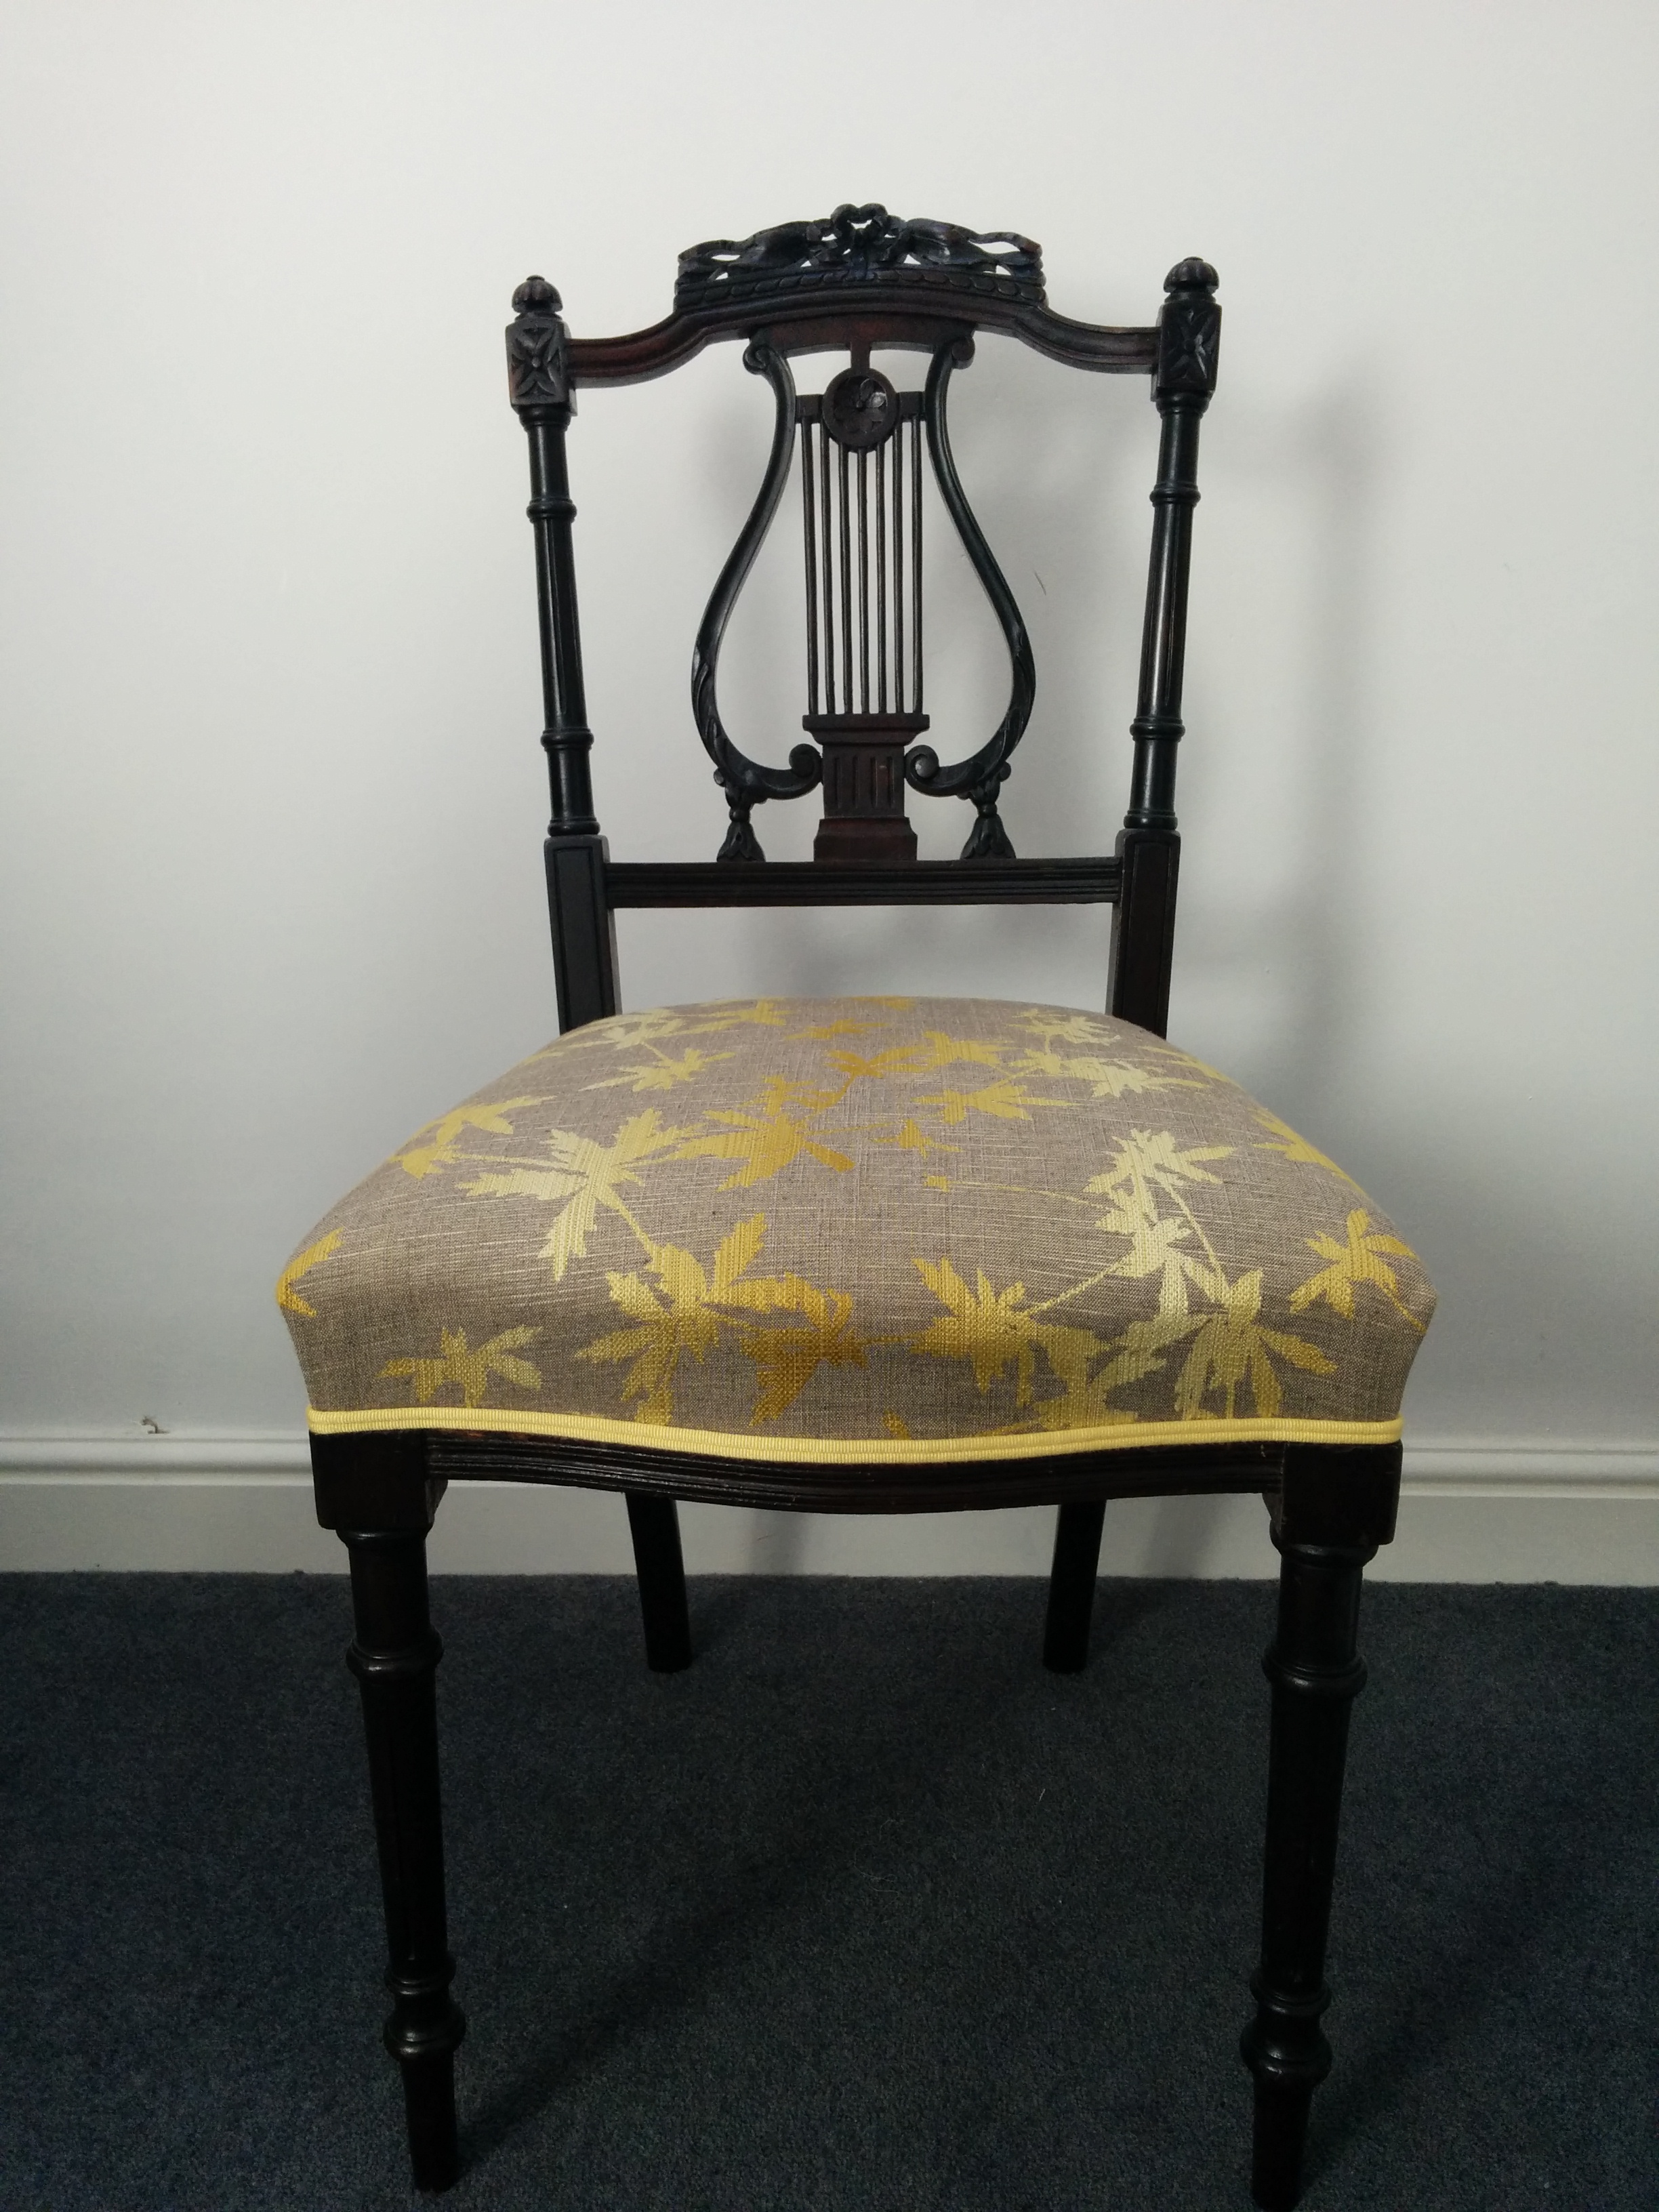 Grist & Twine Upholstery: Victorian lyre-backed chair reupholstered in Clarissa Hulse fabric